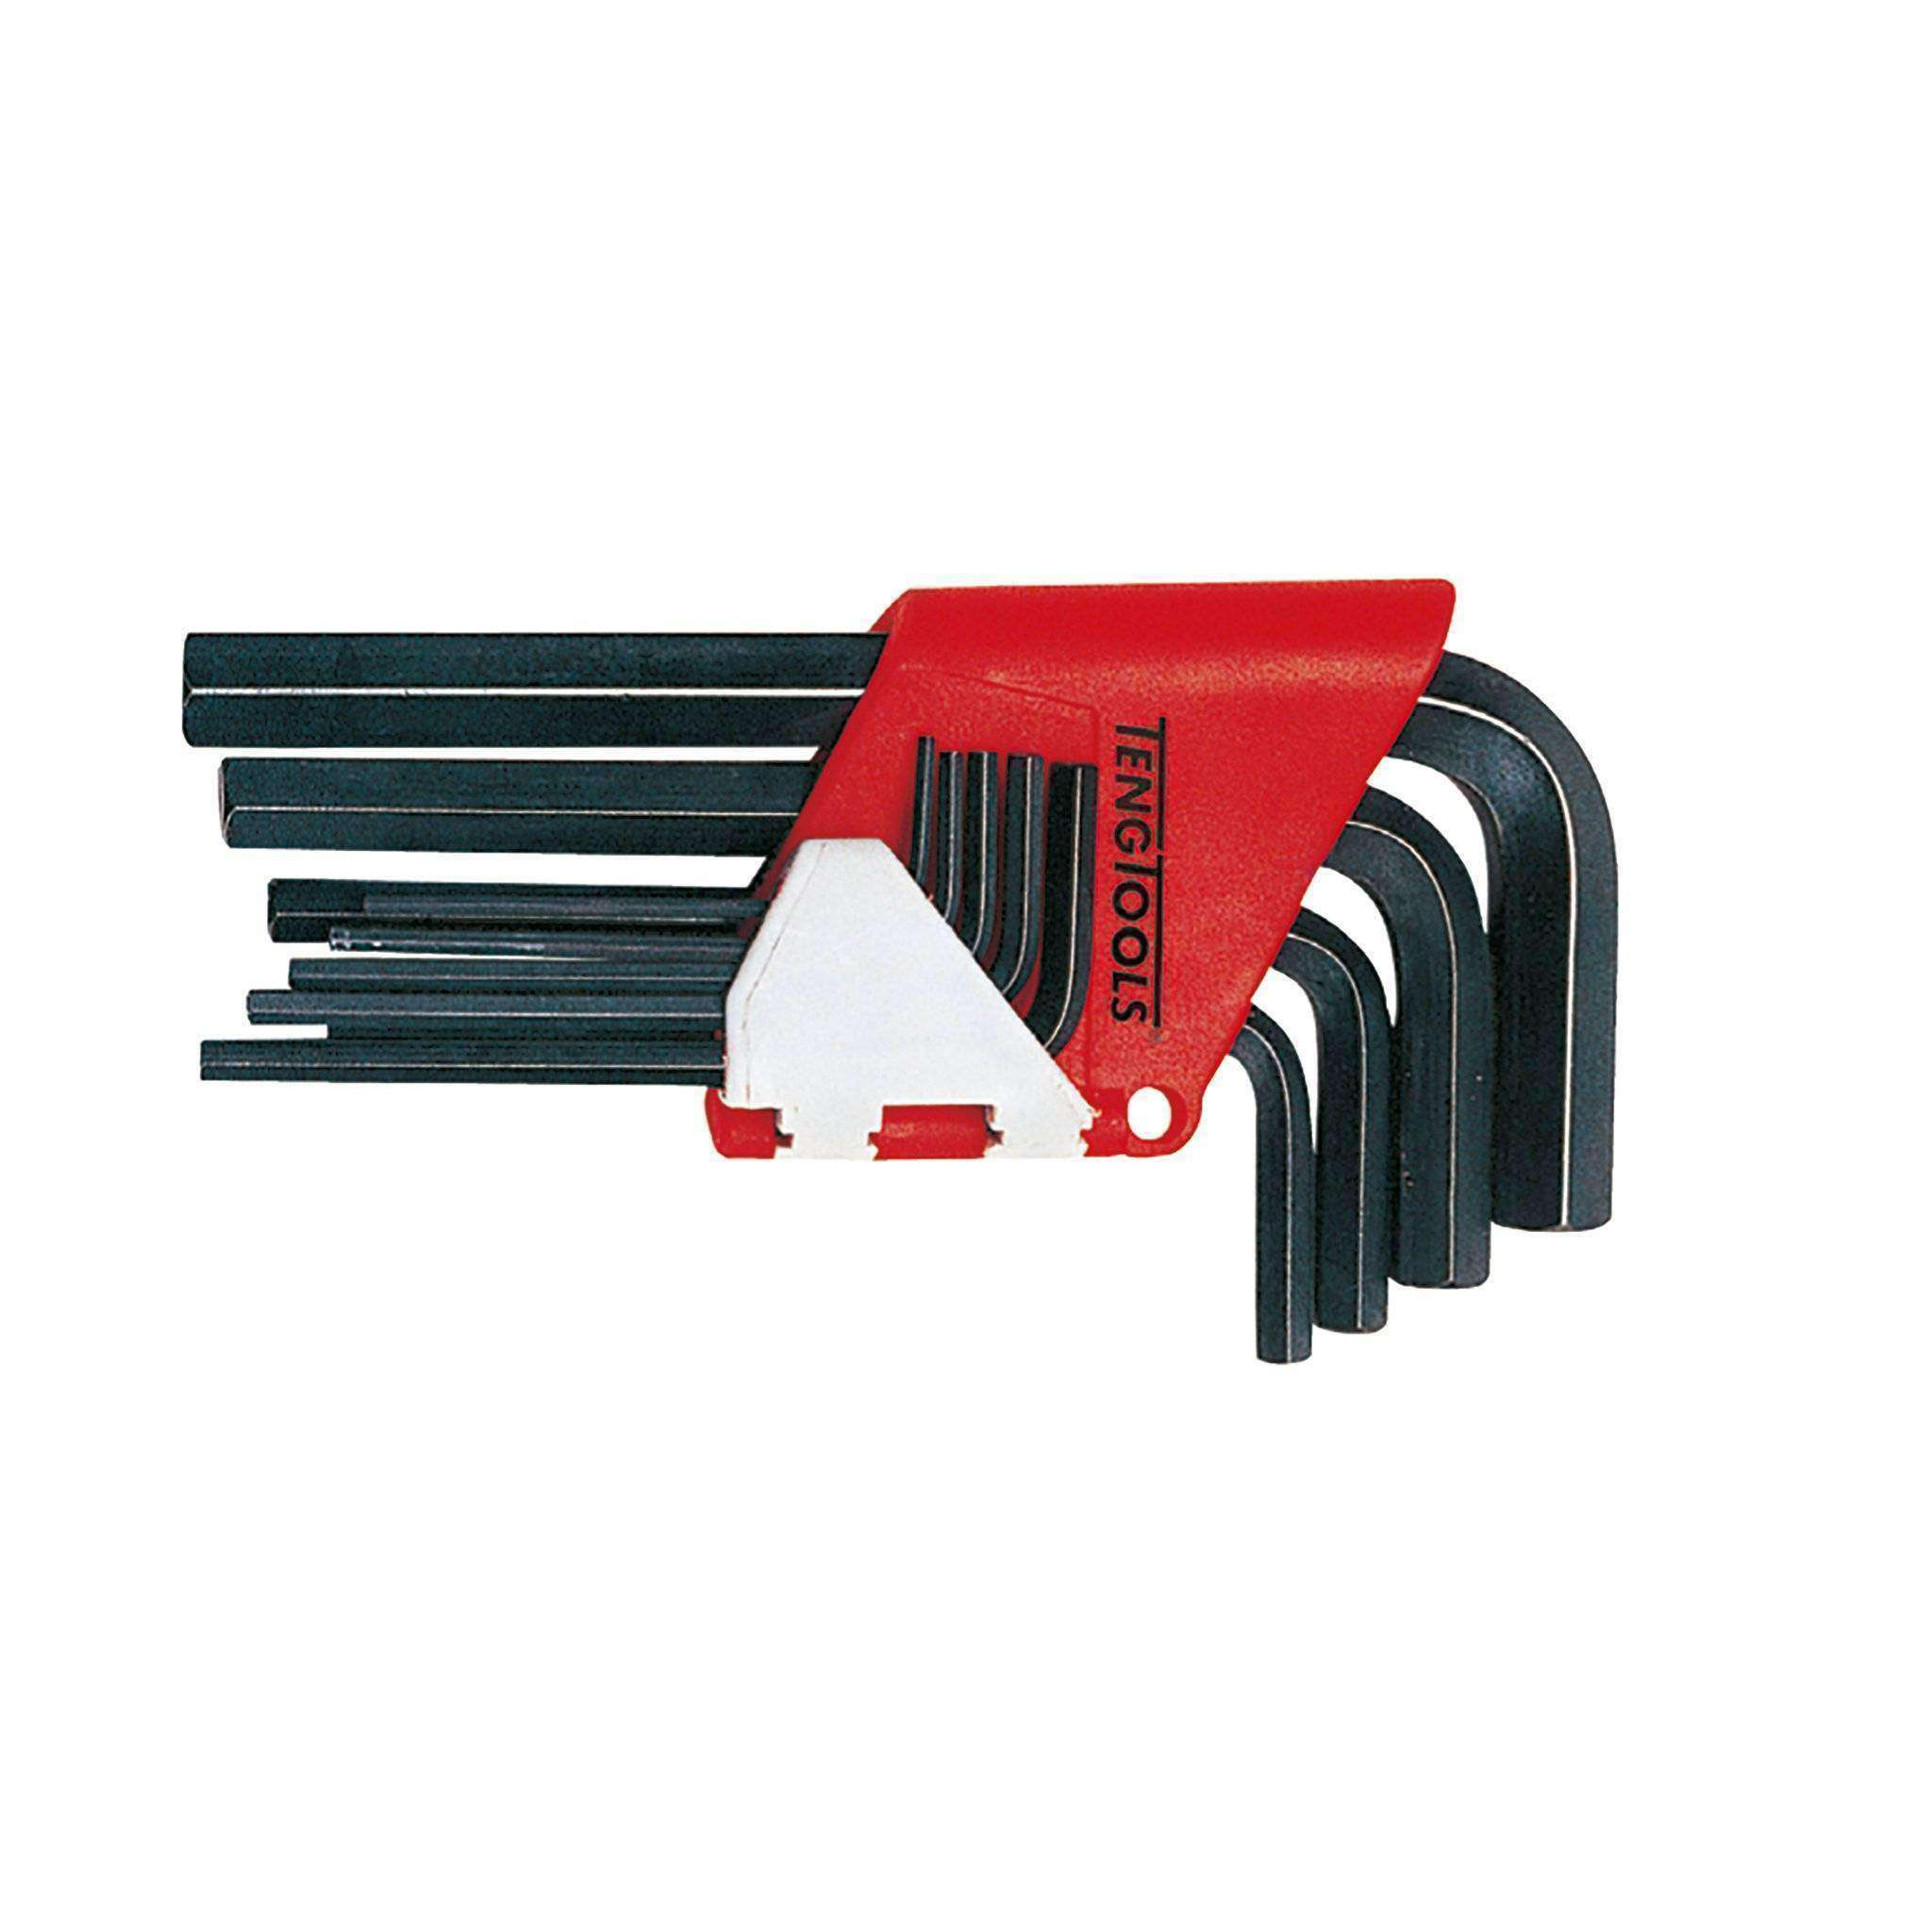 Teng Tools 1479MMR 9 Piece Metric Hex Key Set - Teng Tools USA